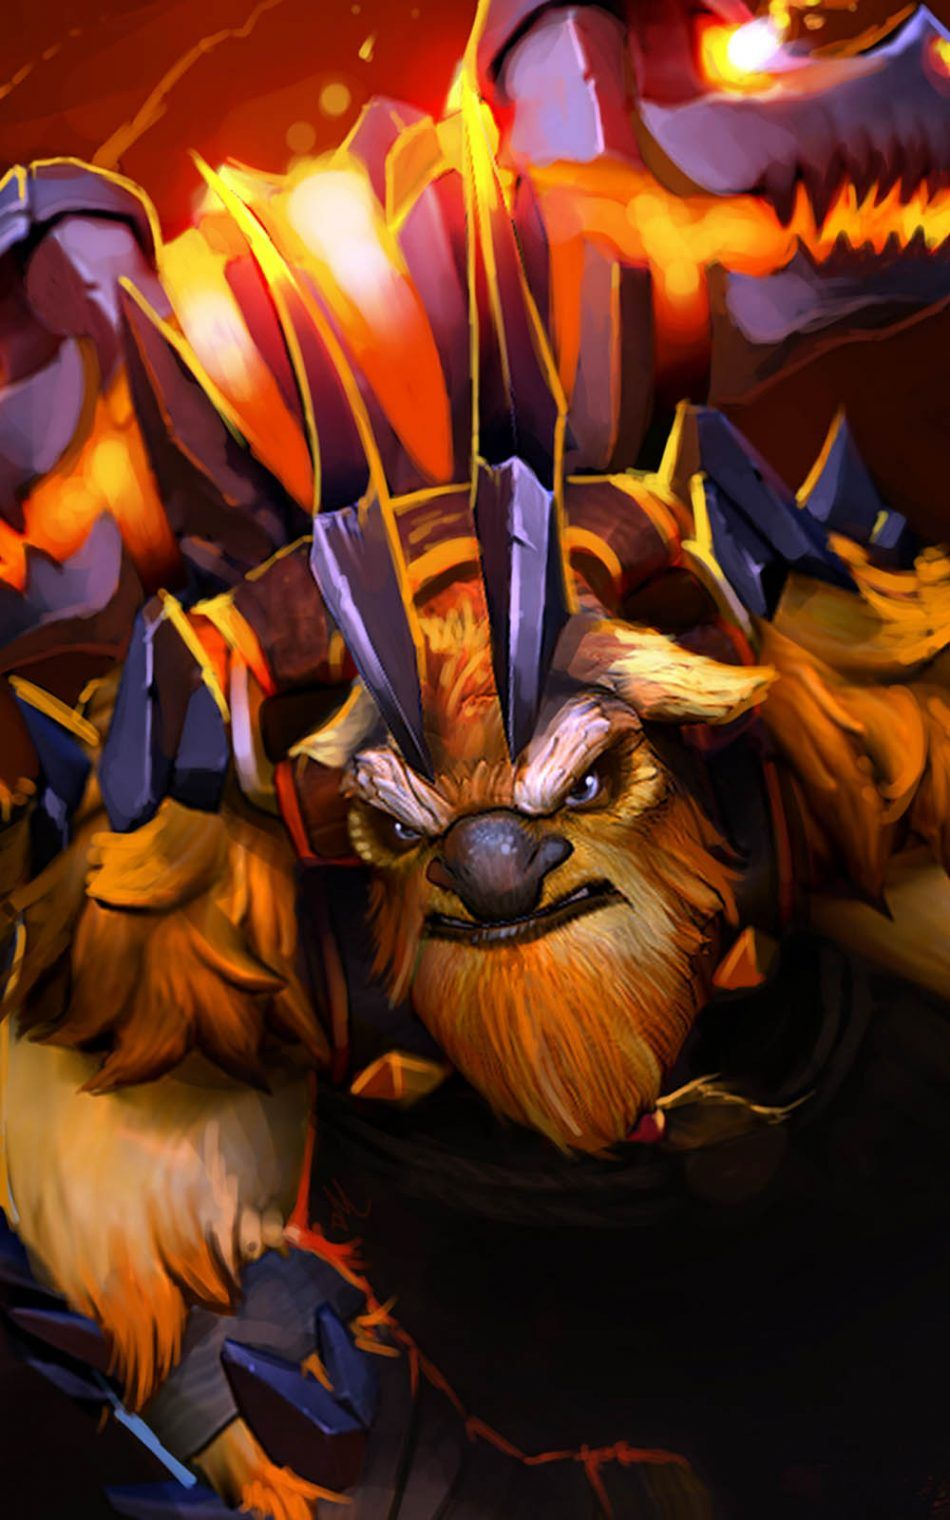 Earthshaker Dota  Imagenes Pinterest Dota  Wallpaper And Wallpaper